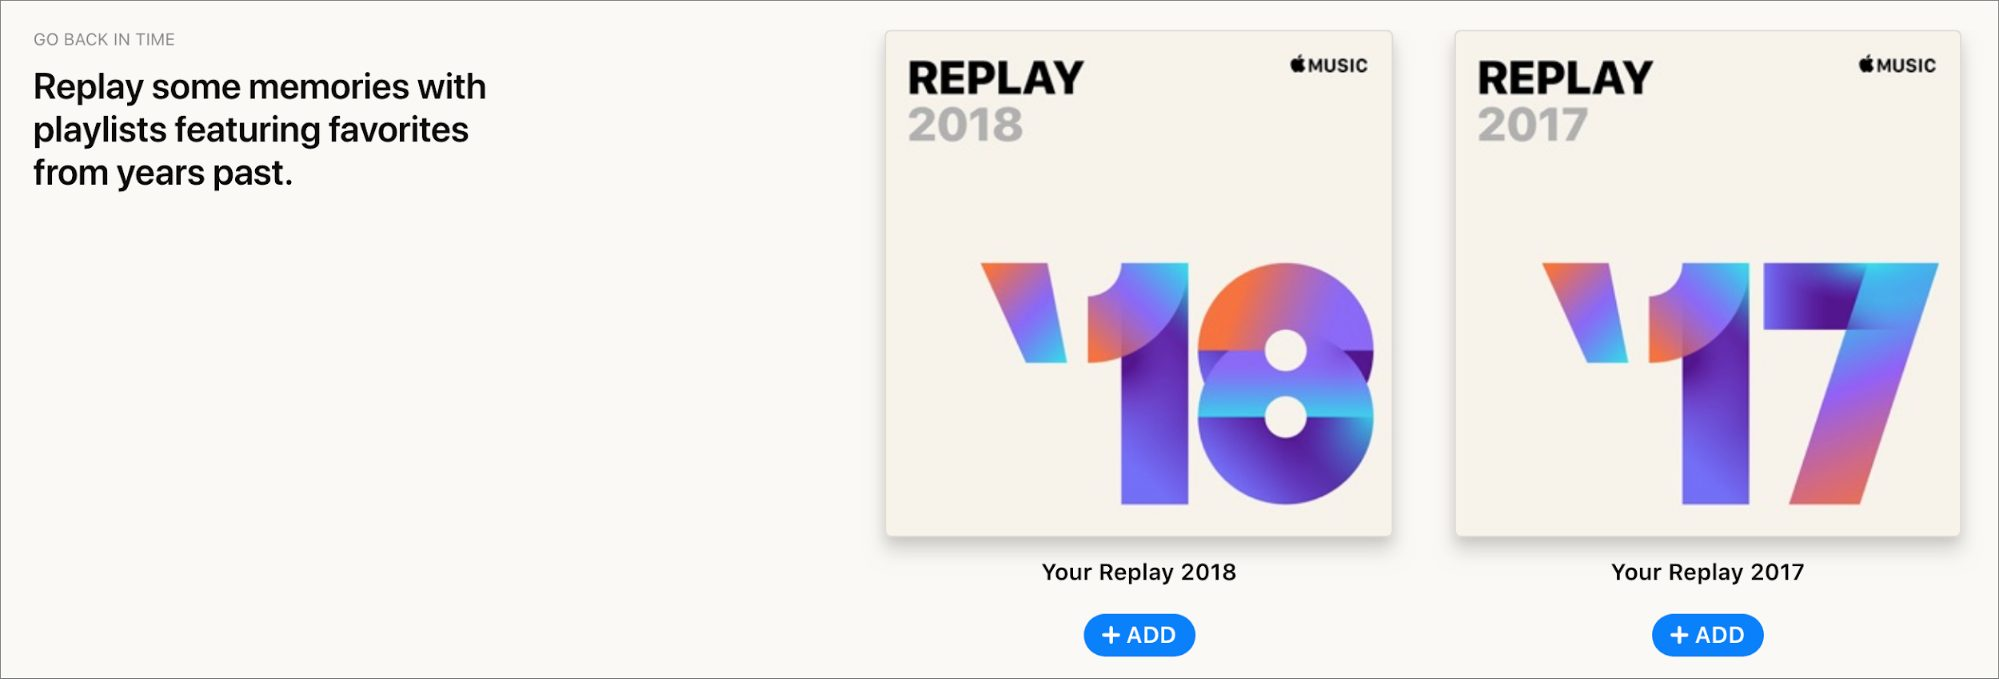 Replay playlists for 2017 and 2018